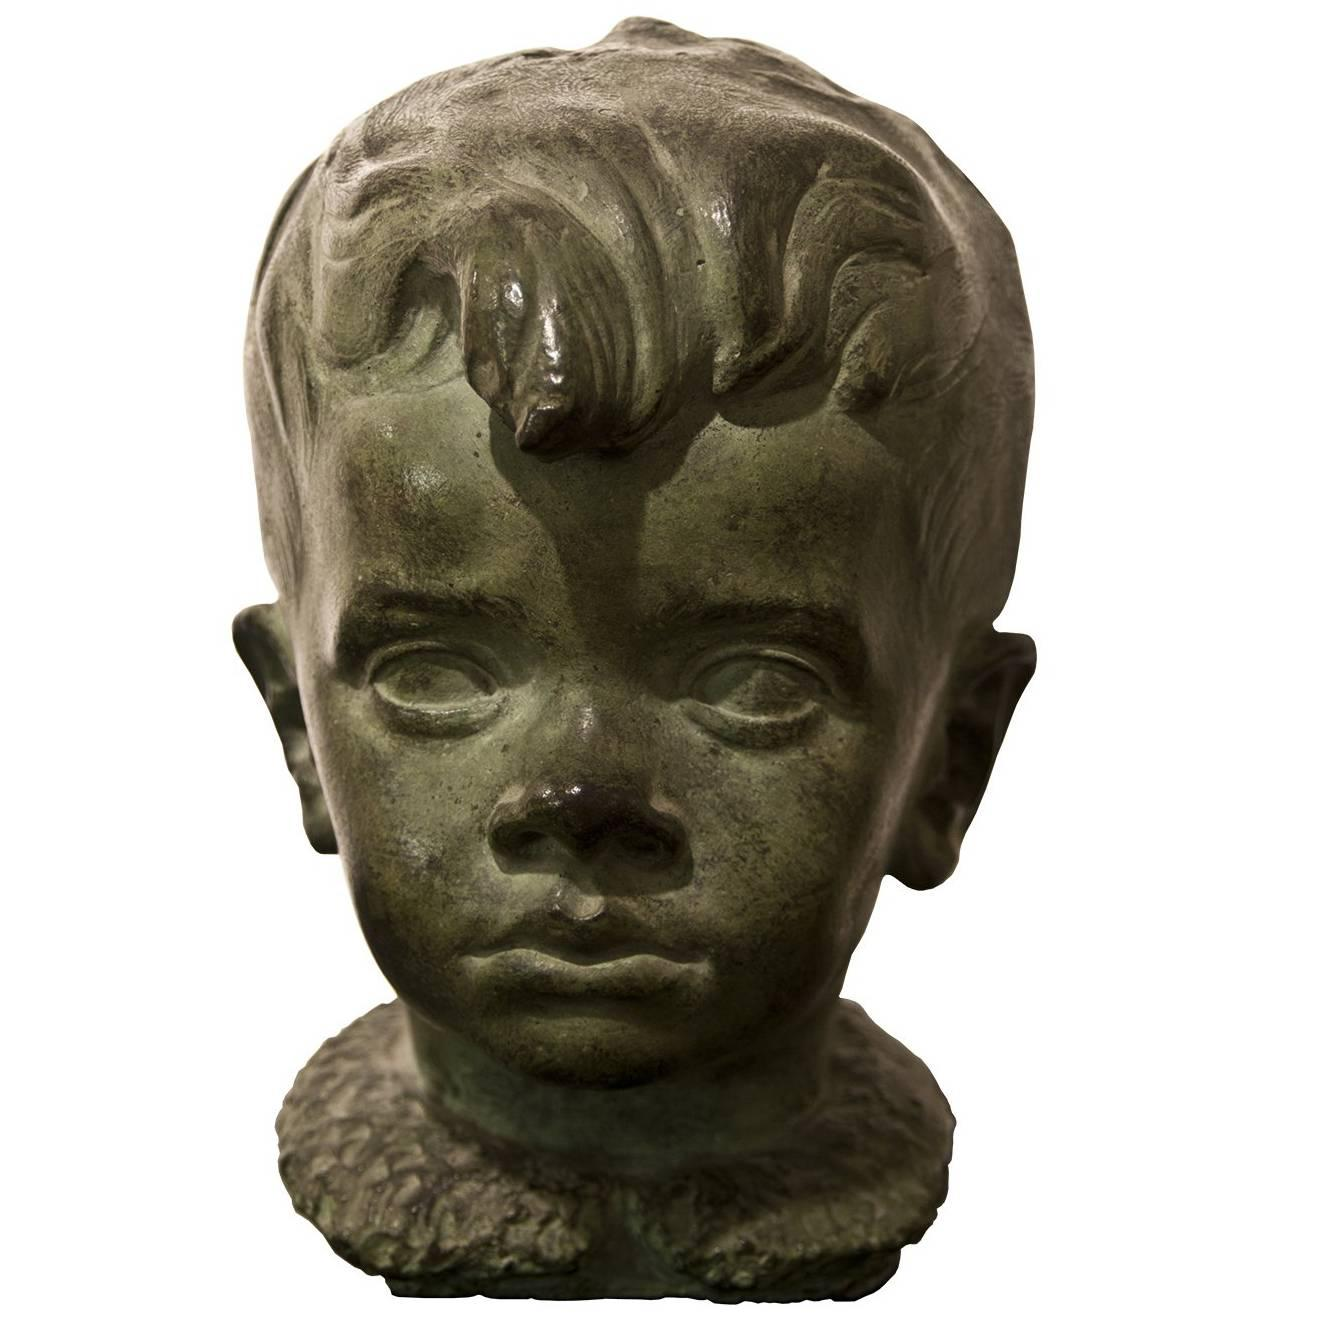 Child Bust by Carlo Pisi, Italy, 1930s